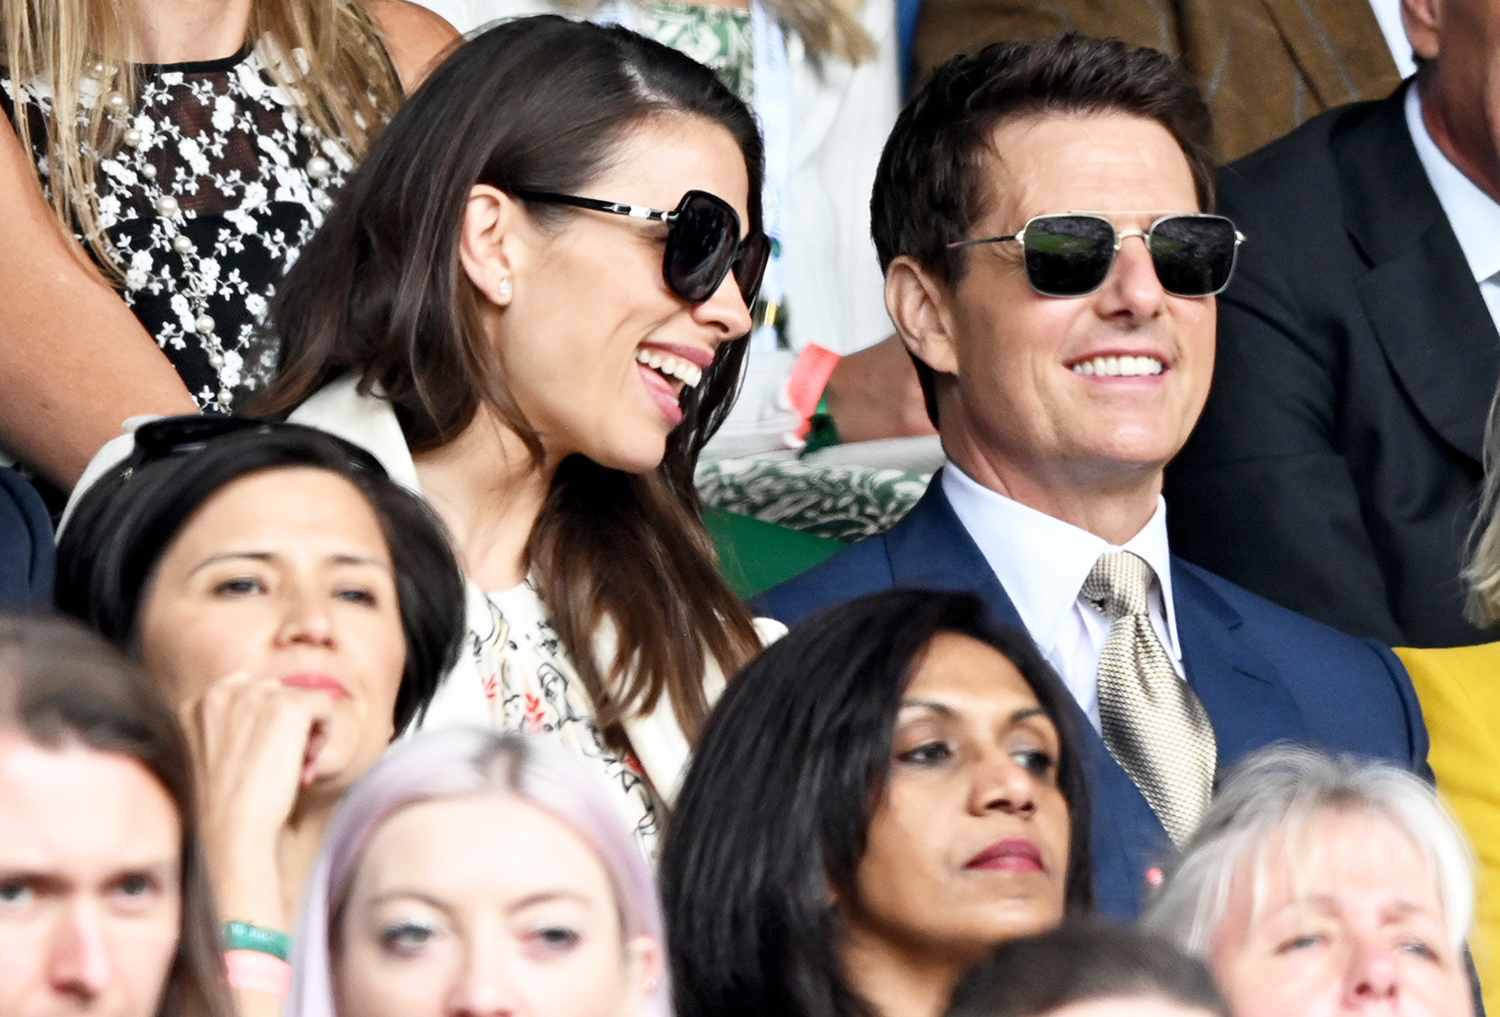 Hayley Atwell and Tom Cruise attend Wimbledon Championships Tennis Tournament at All England Lawn Tennis and Croquet Club on July 10, 2021 in London, England.